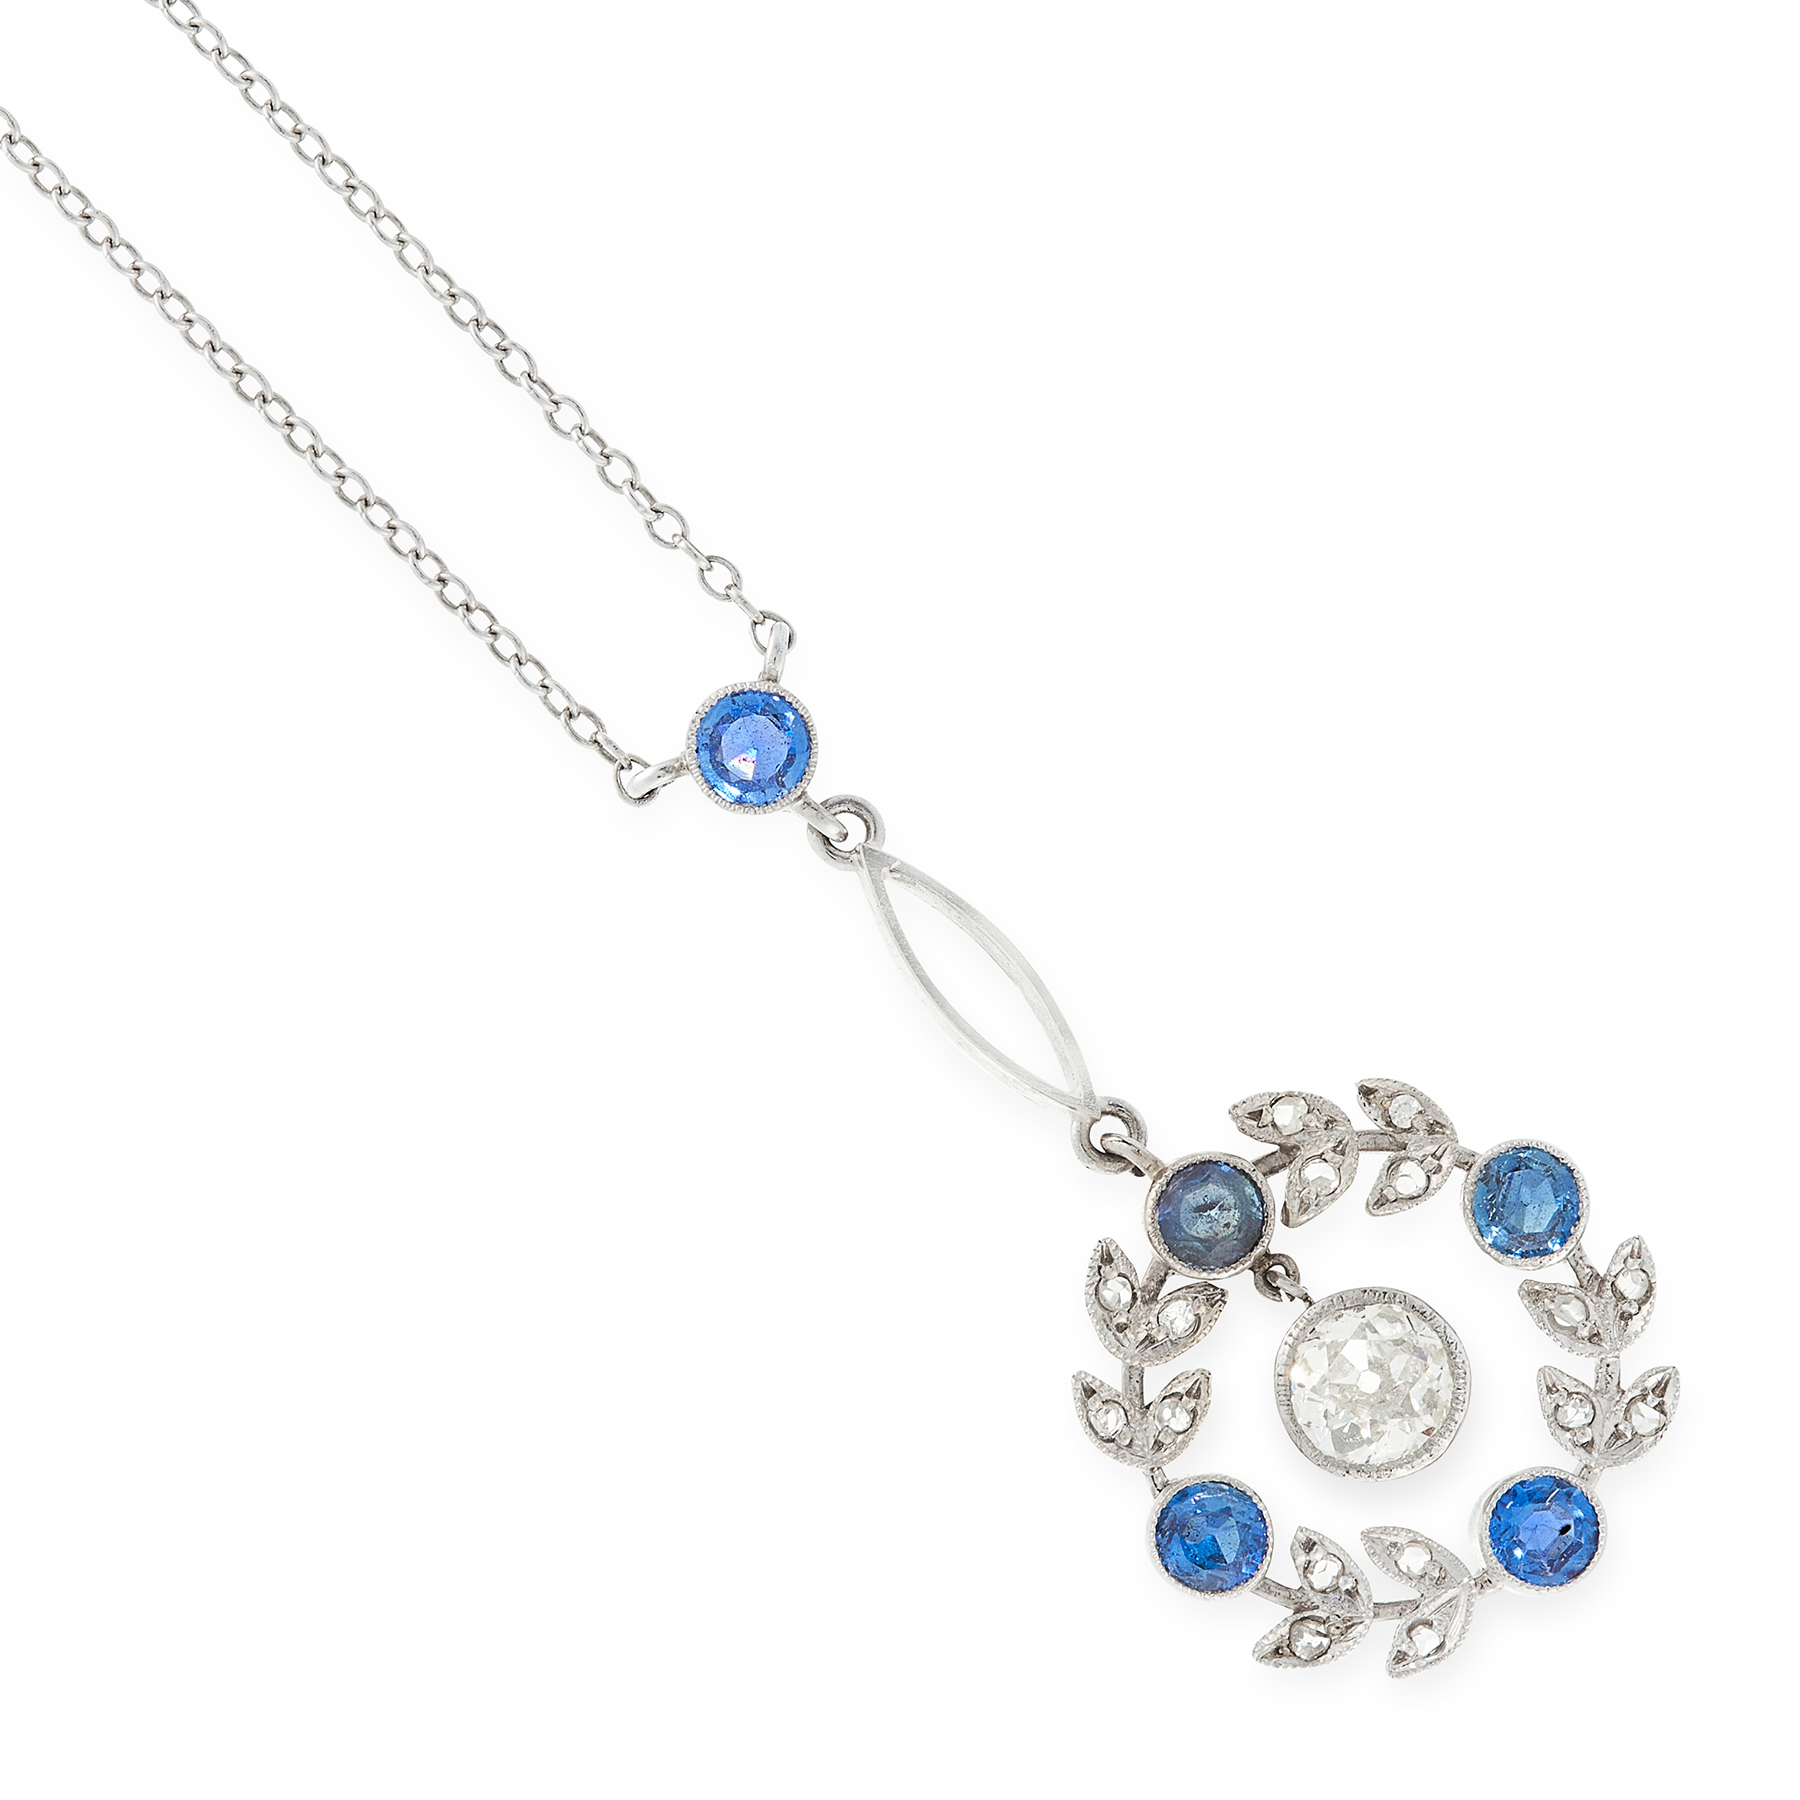 A DIAMOND AND SAPPHIRE PENDANT NECKLACE set with an old cut diamond of 0.55 carats, suspended within - Image 2 of 2